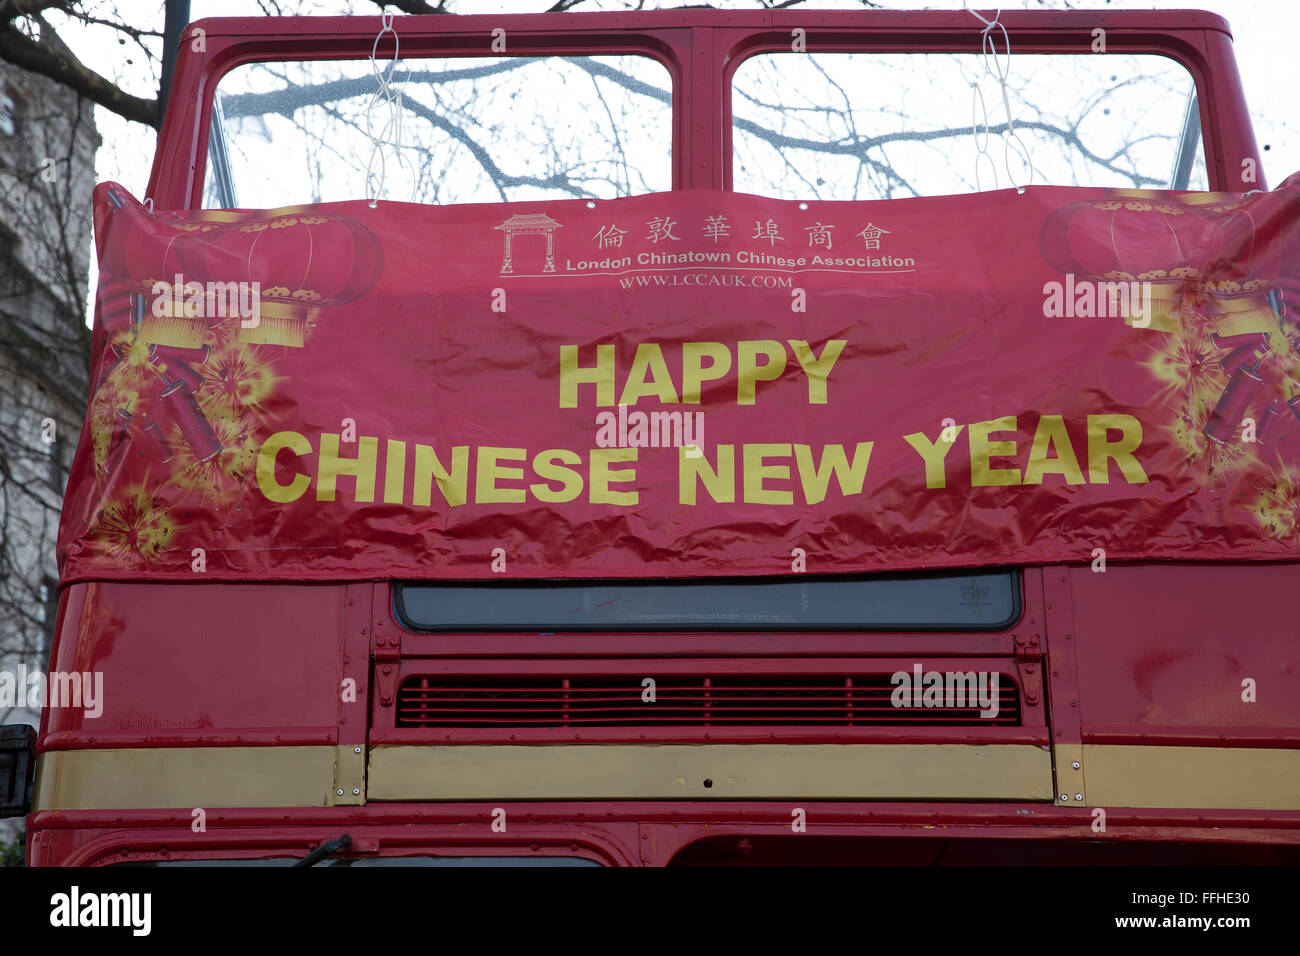 london uk 14th feb 2016 happy chinese new year banner on a routemaster bus at the chinese new year celebrations in trafalgar square londo credit keith